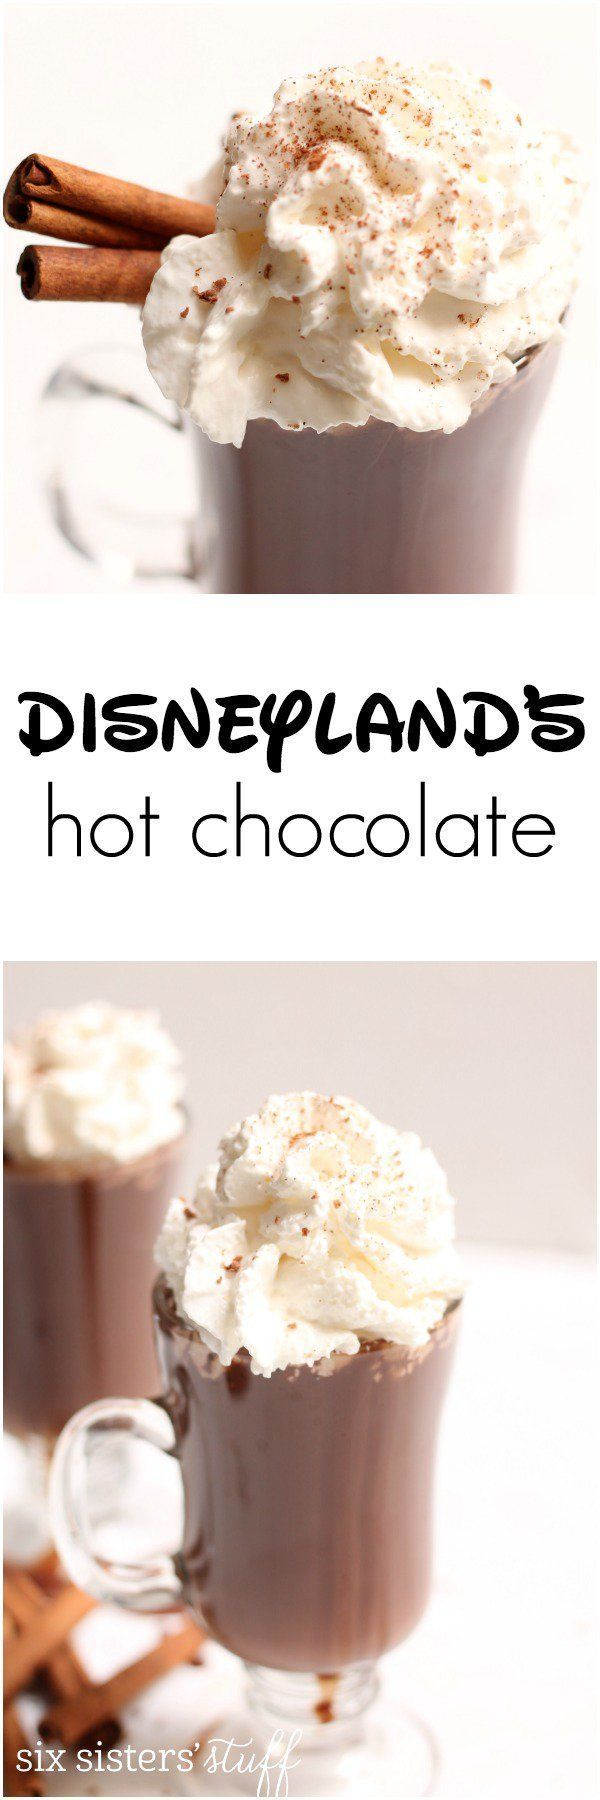 Disneyland's Hot Chocolate Recipe from SixSistersStuff.com | Even though it doesnt get too cold at the Disneyland Parks in the winter, its cold enough that you'll want a jacket and some of their AMAZING Hot Chocolate from the Napa Rose Restaurant